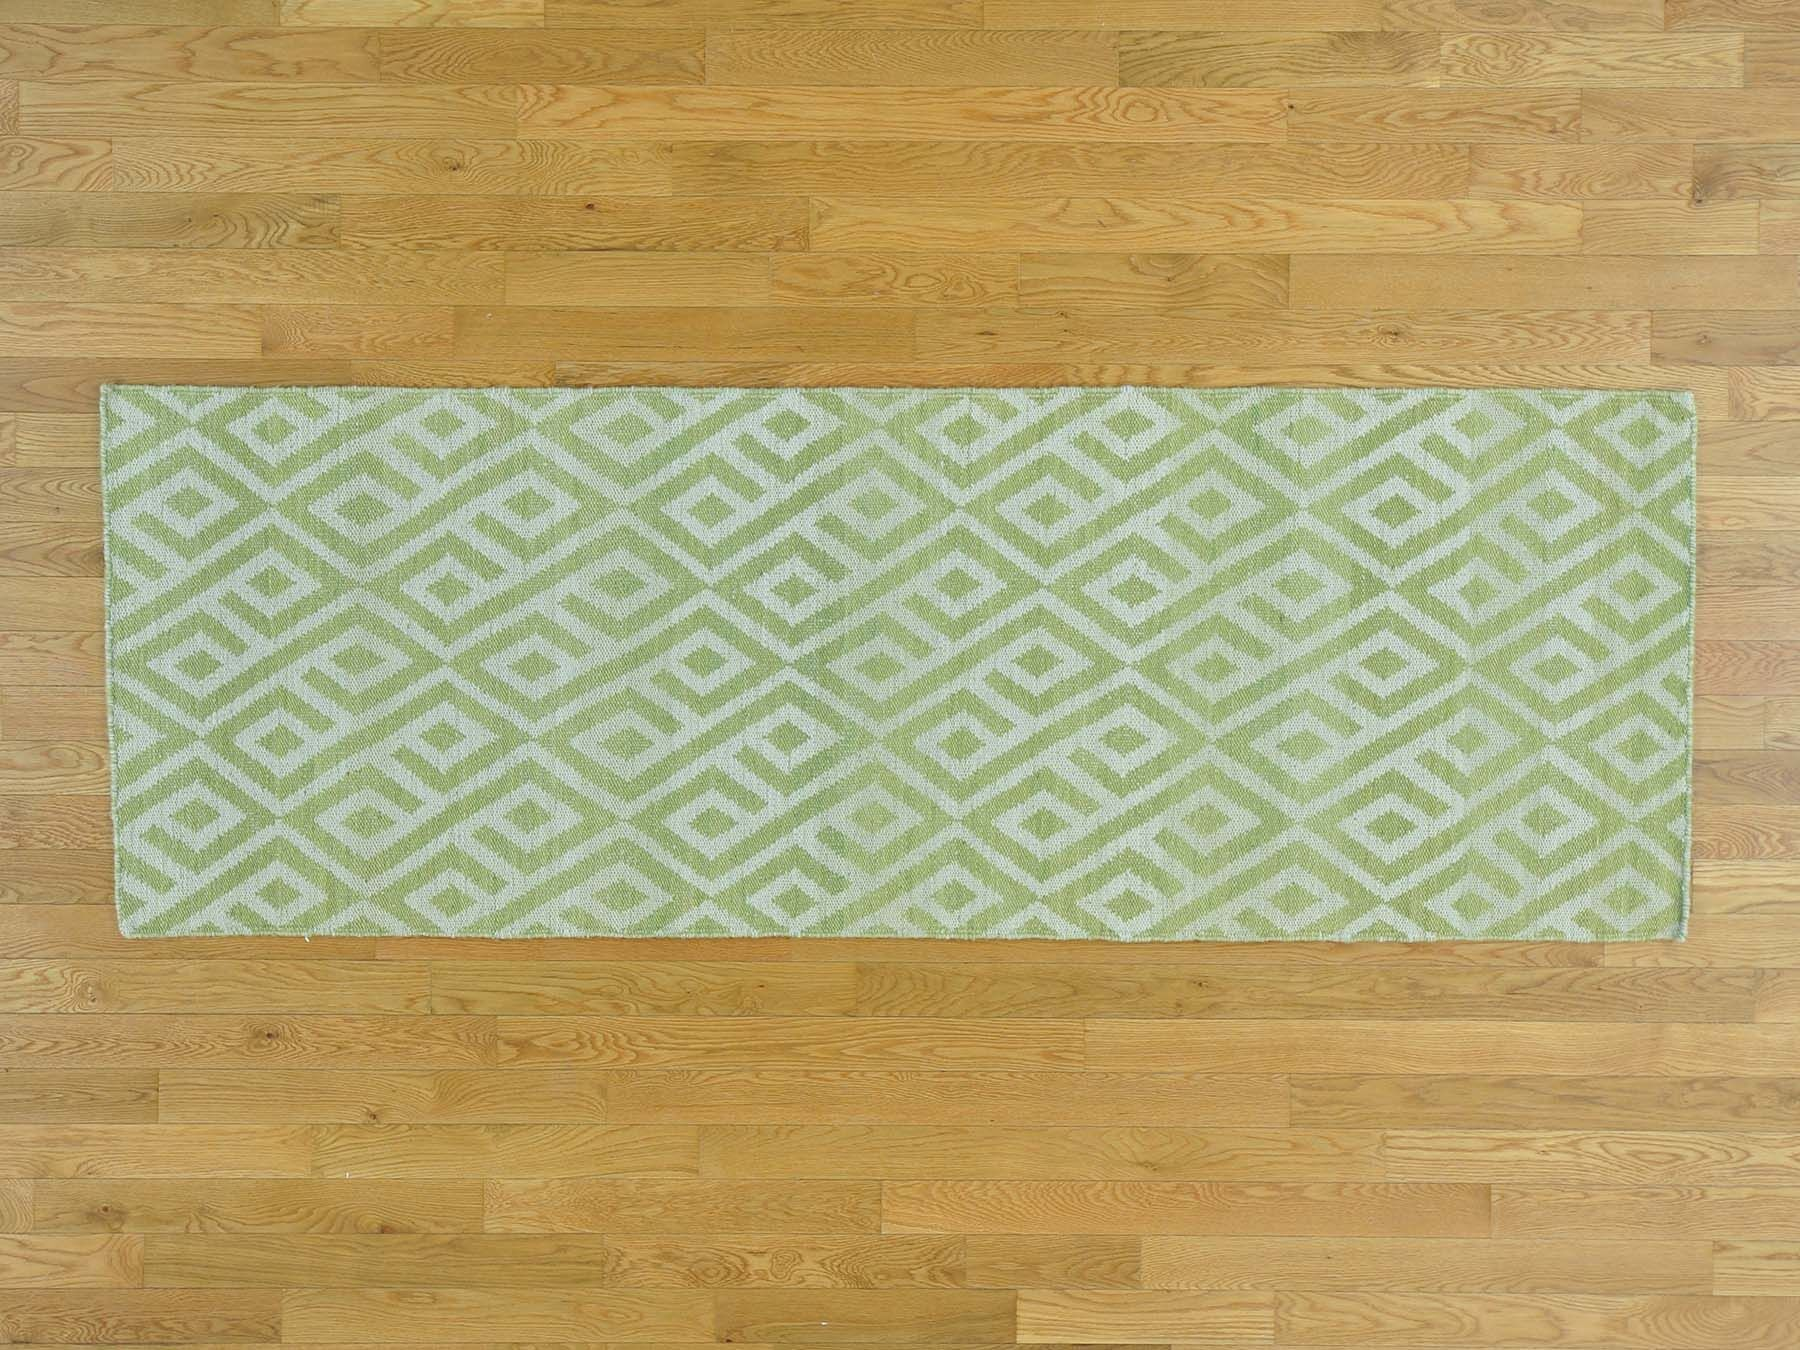 One-of-a-Kind Braiden Killim Reversible Handwoven Wool Area Rug